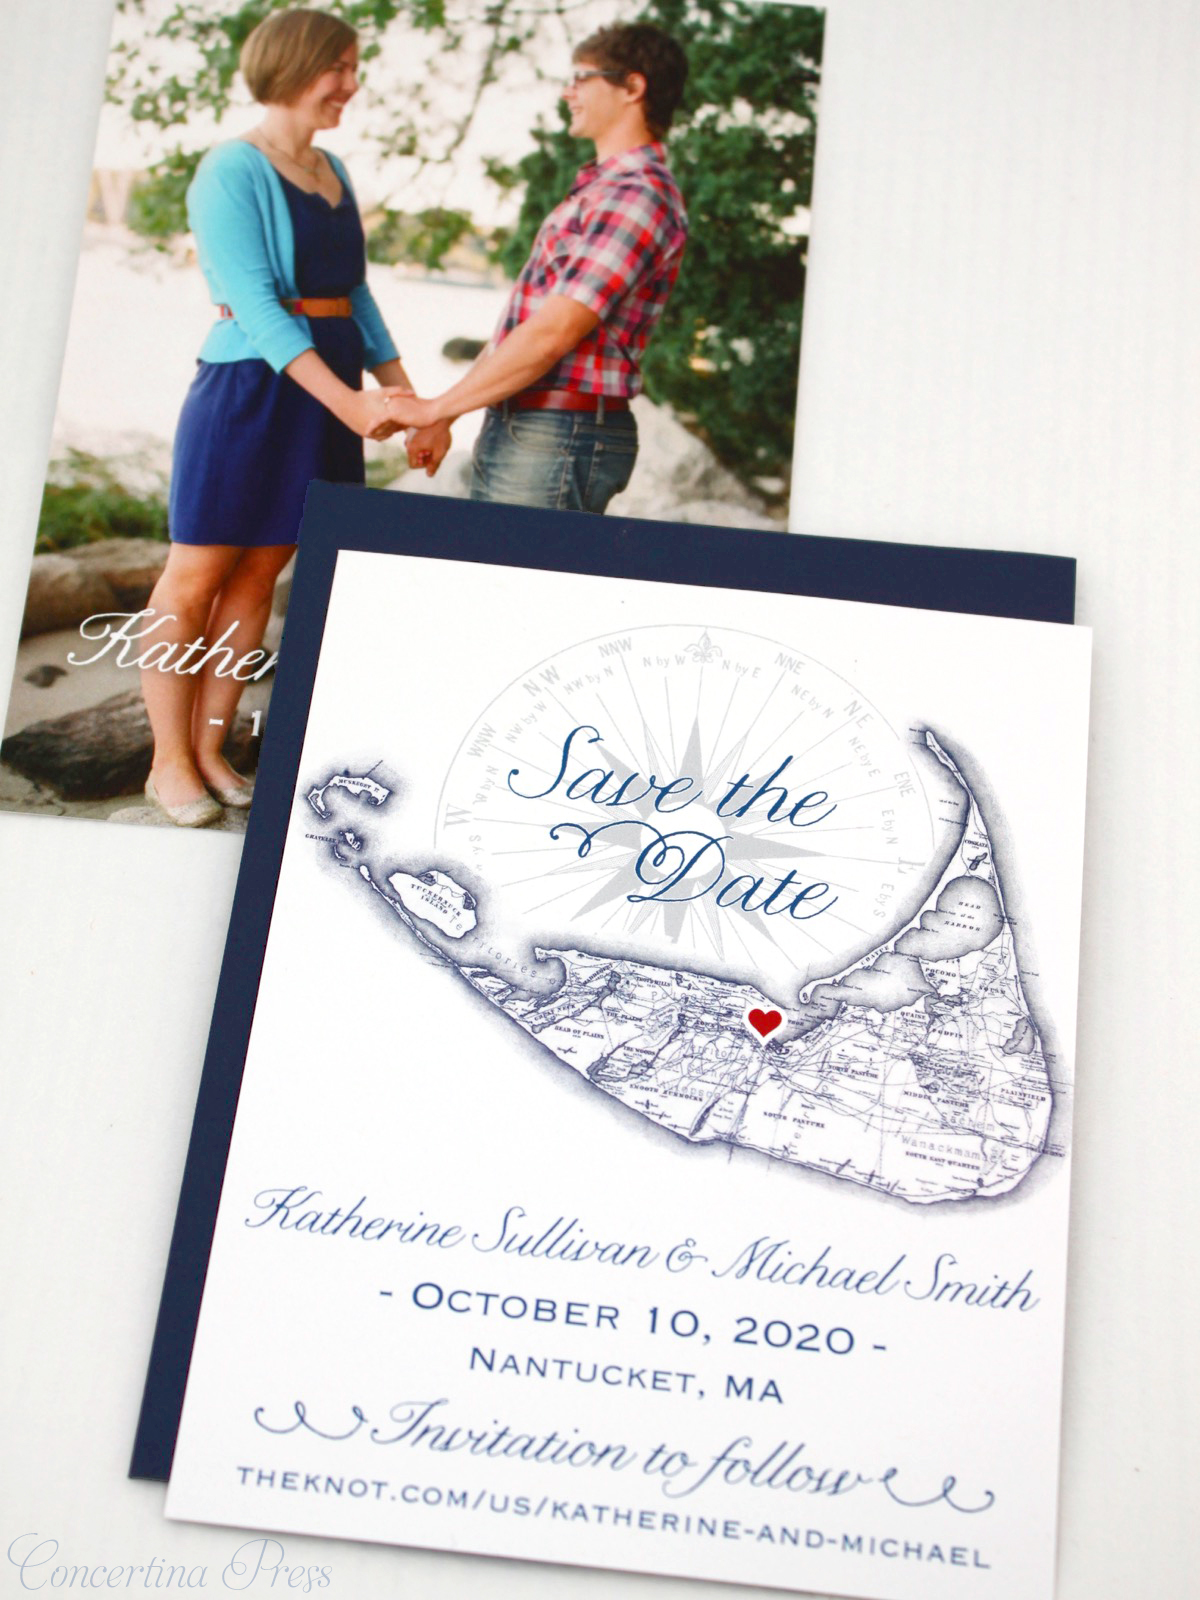 Nantucket Save the Dates with Photo from Concertina Press